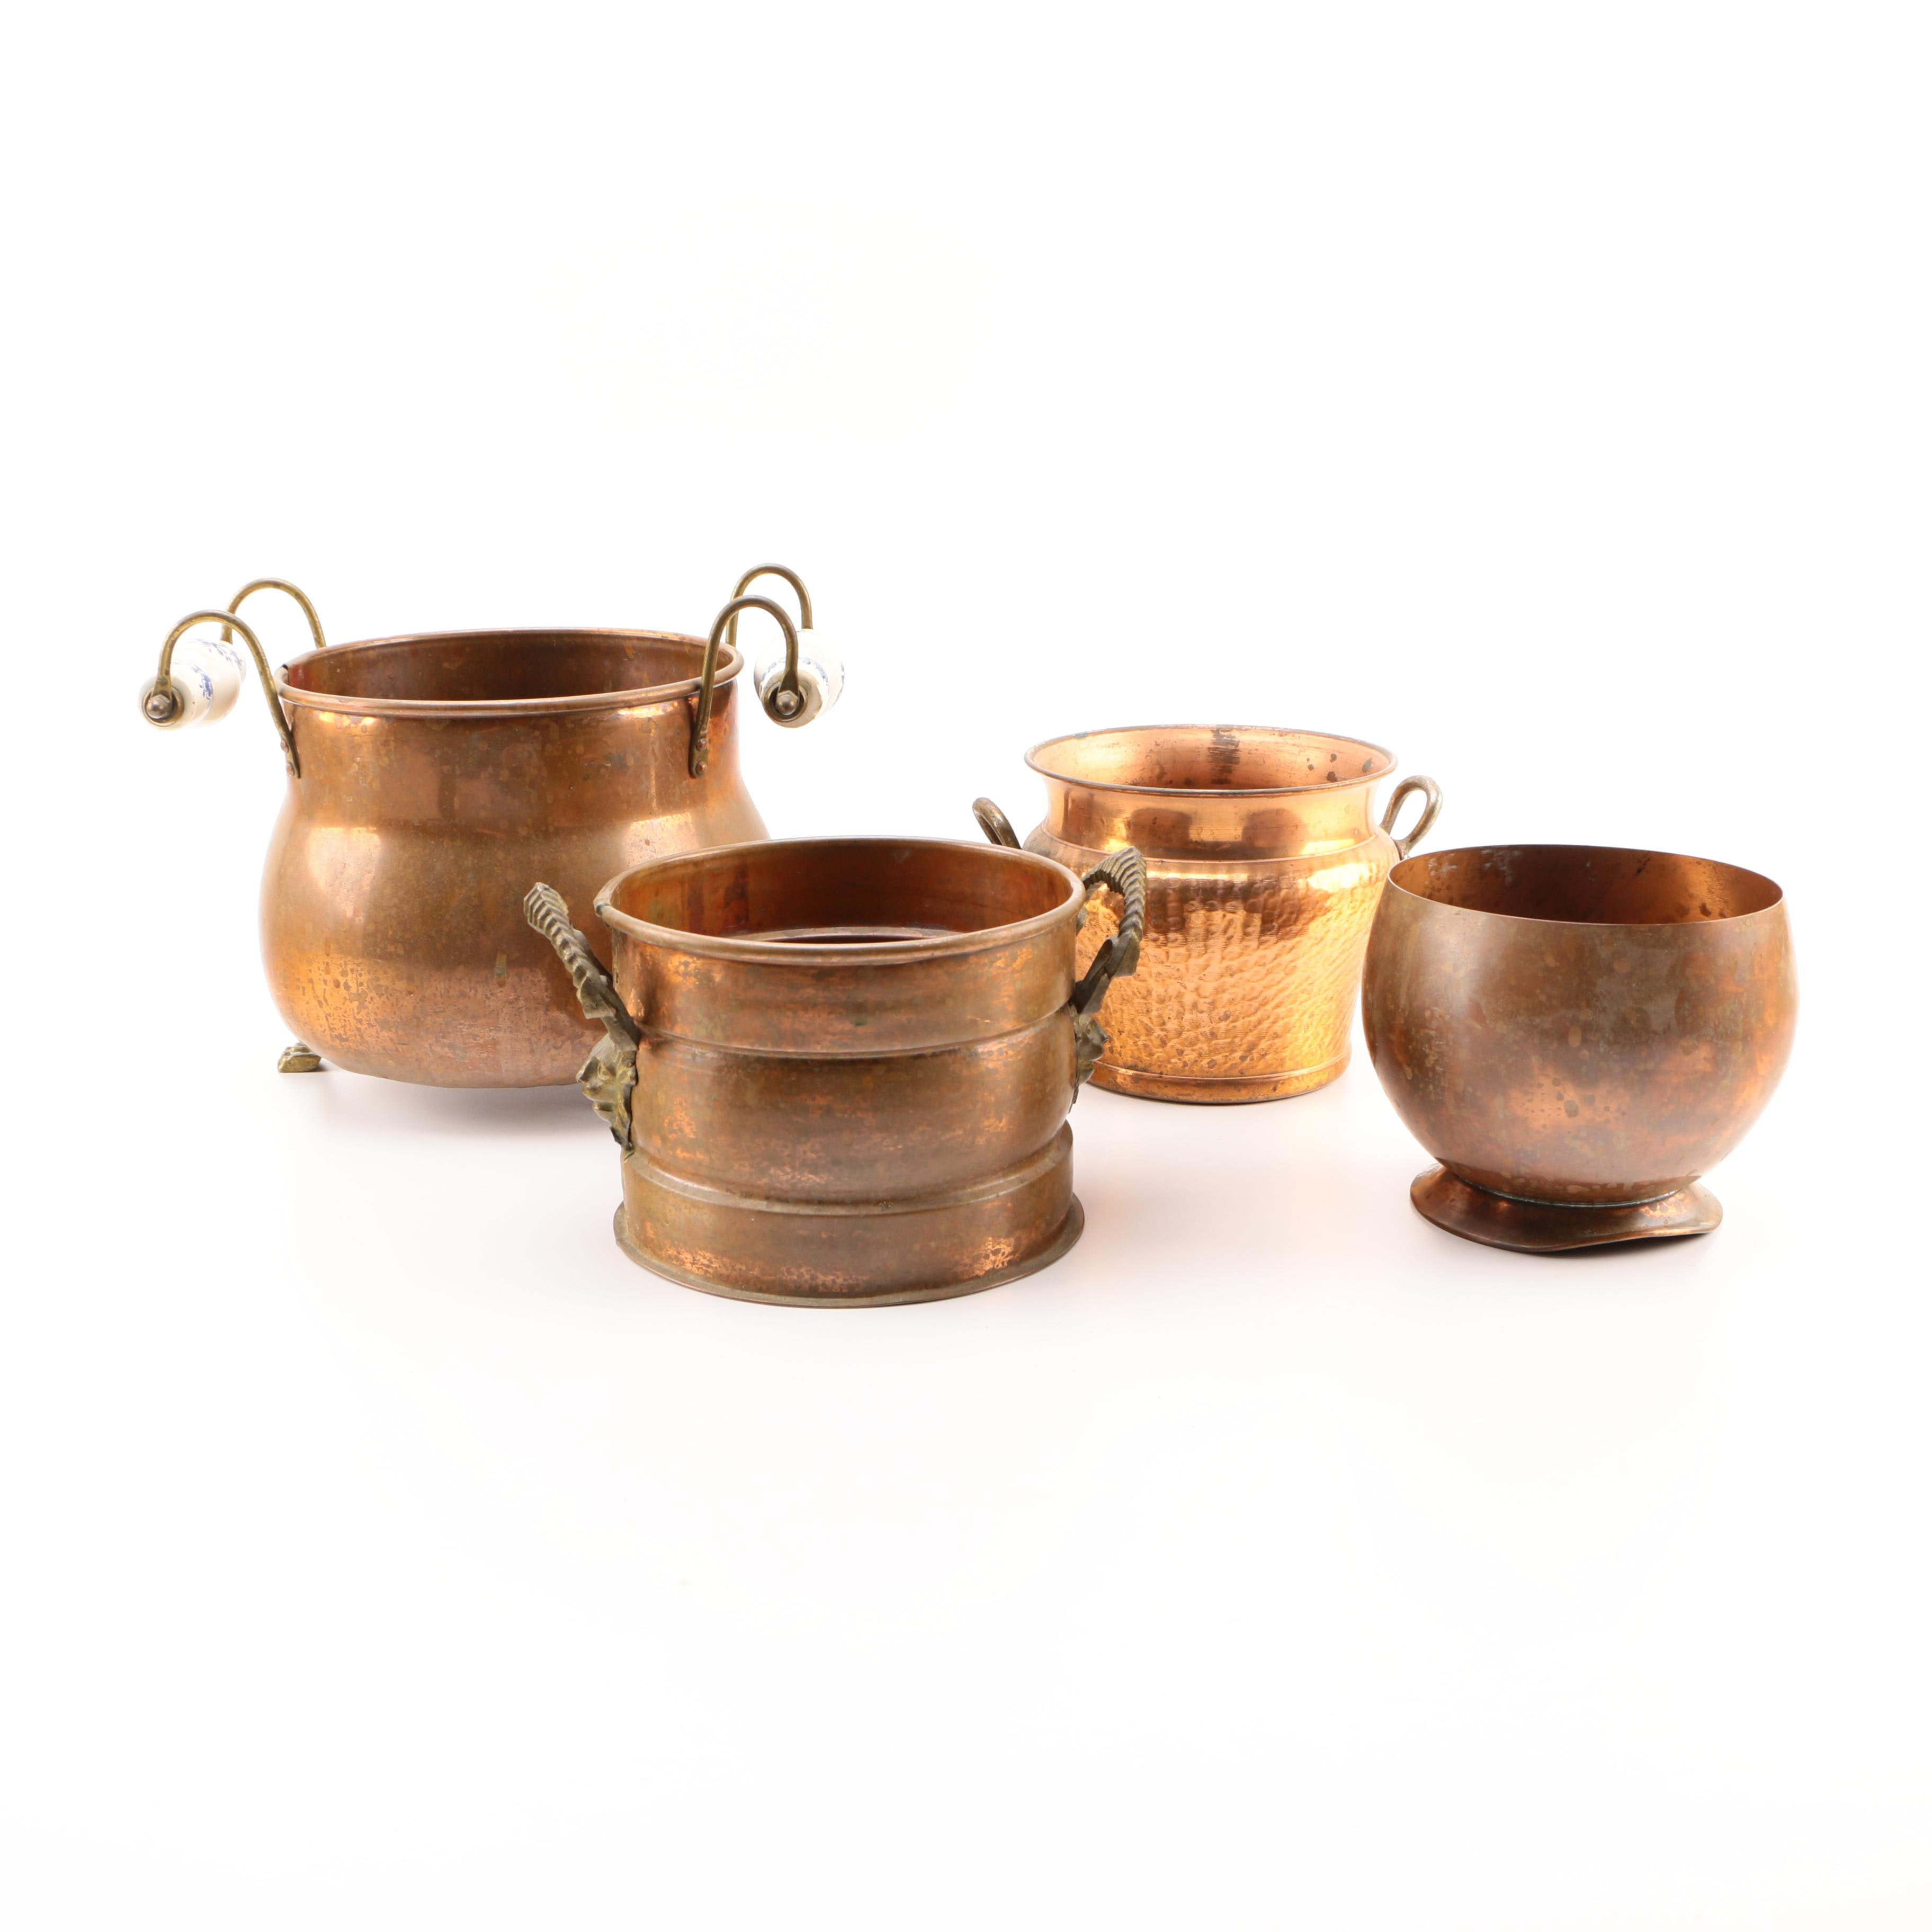 Assortment of Copper and Copper Tone Vessels